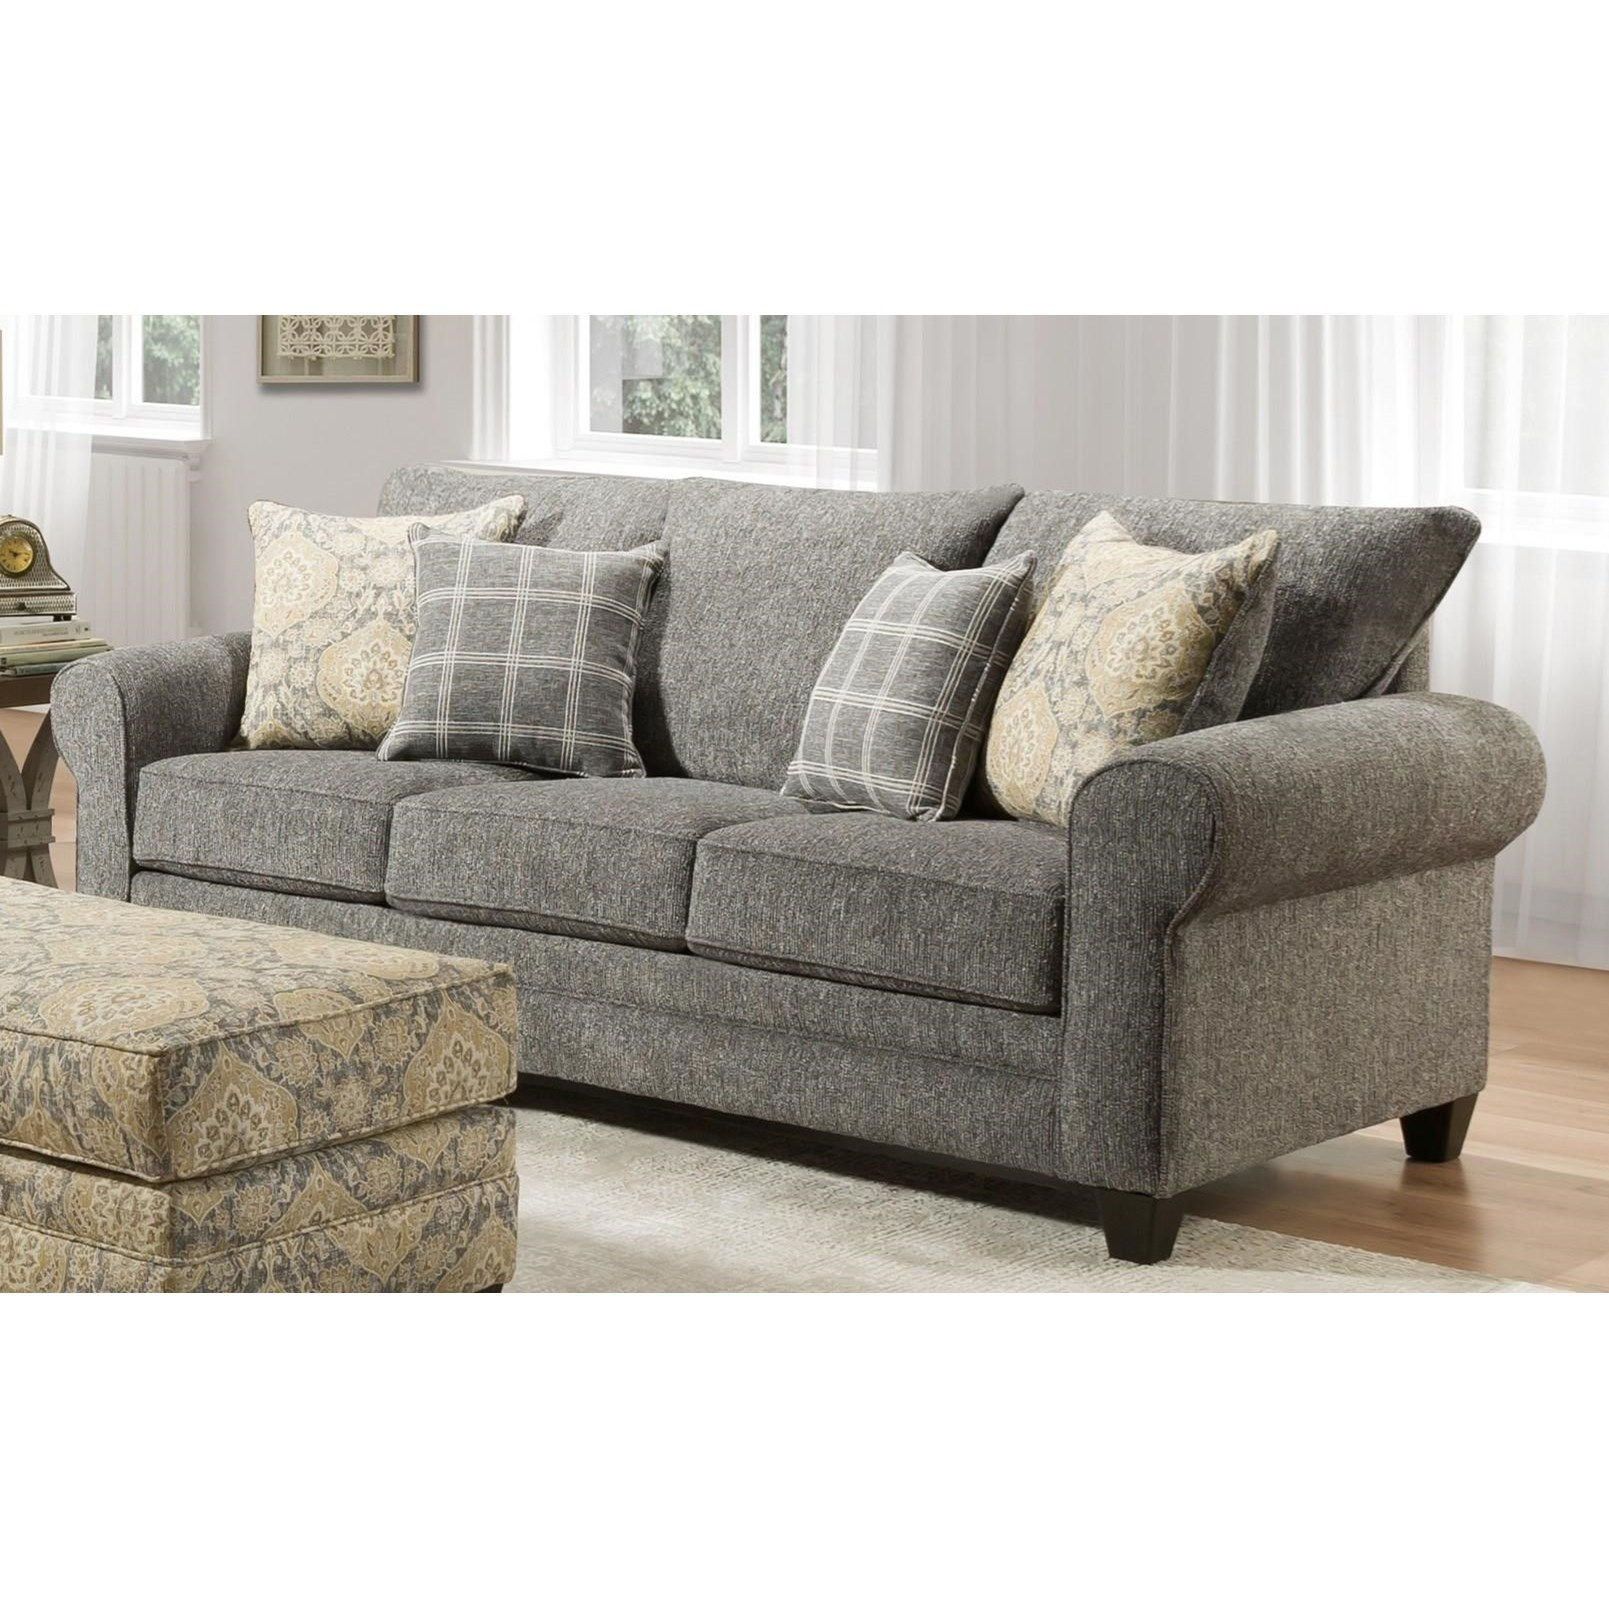 4170 Sofa  by Peak Living at Prime Brothers Furniture